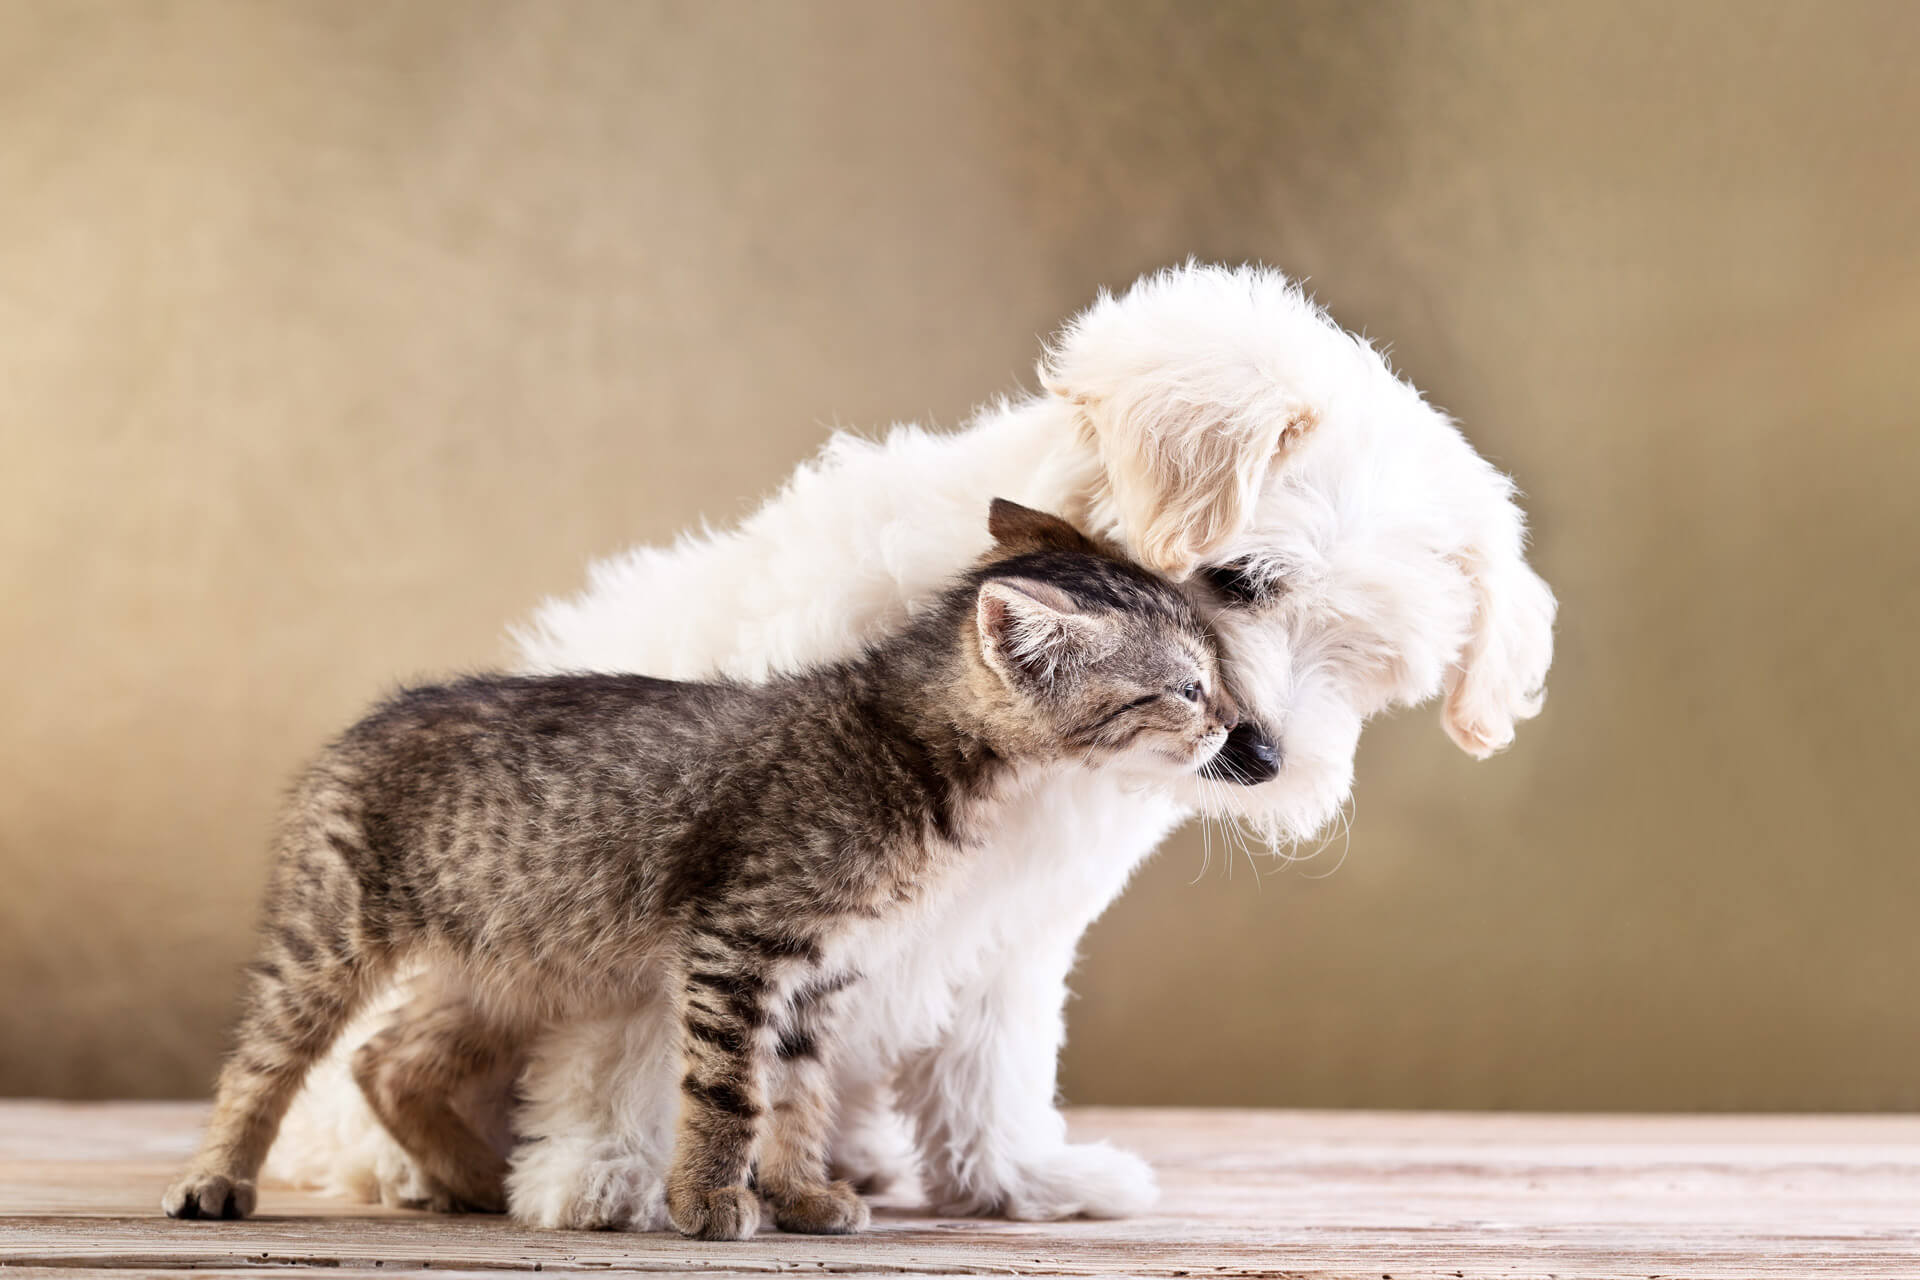 5 Ways to Celebrate National Love Your Pet Day